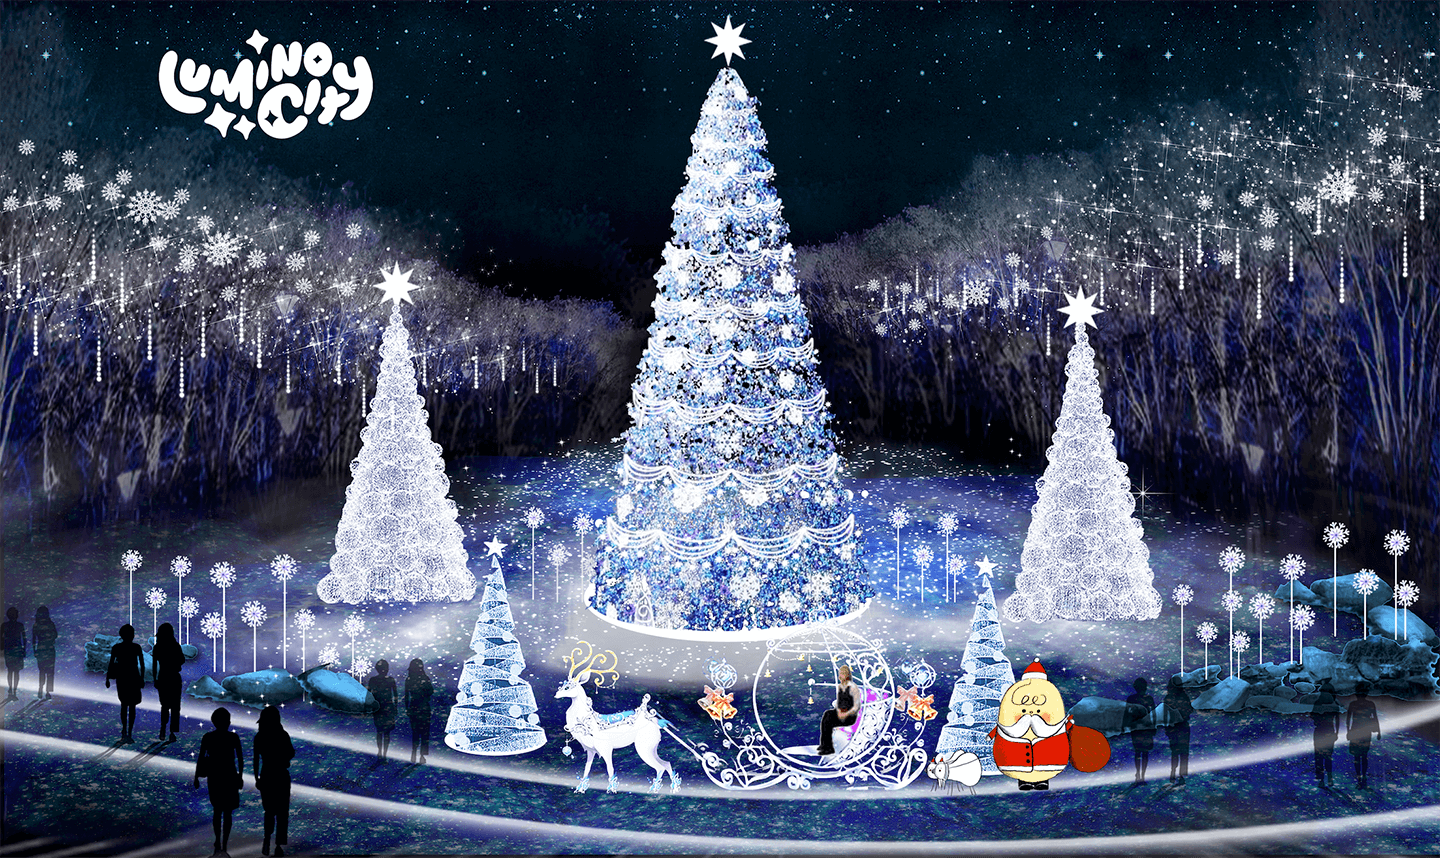 the-frosted-christmas-trees-the-winter-fantasy-light-arts-luminocity-festival-rendered-image